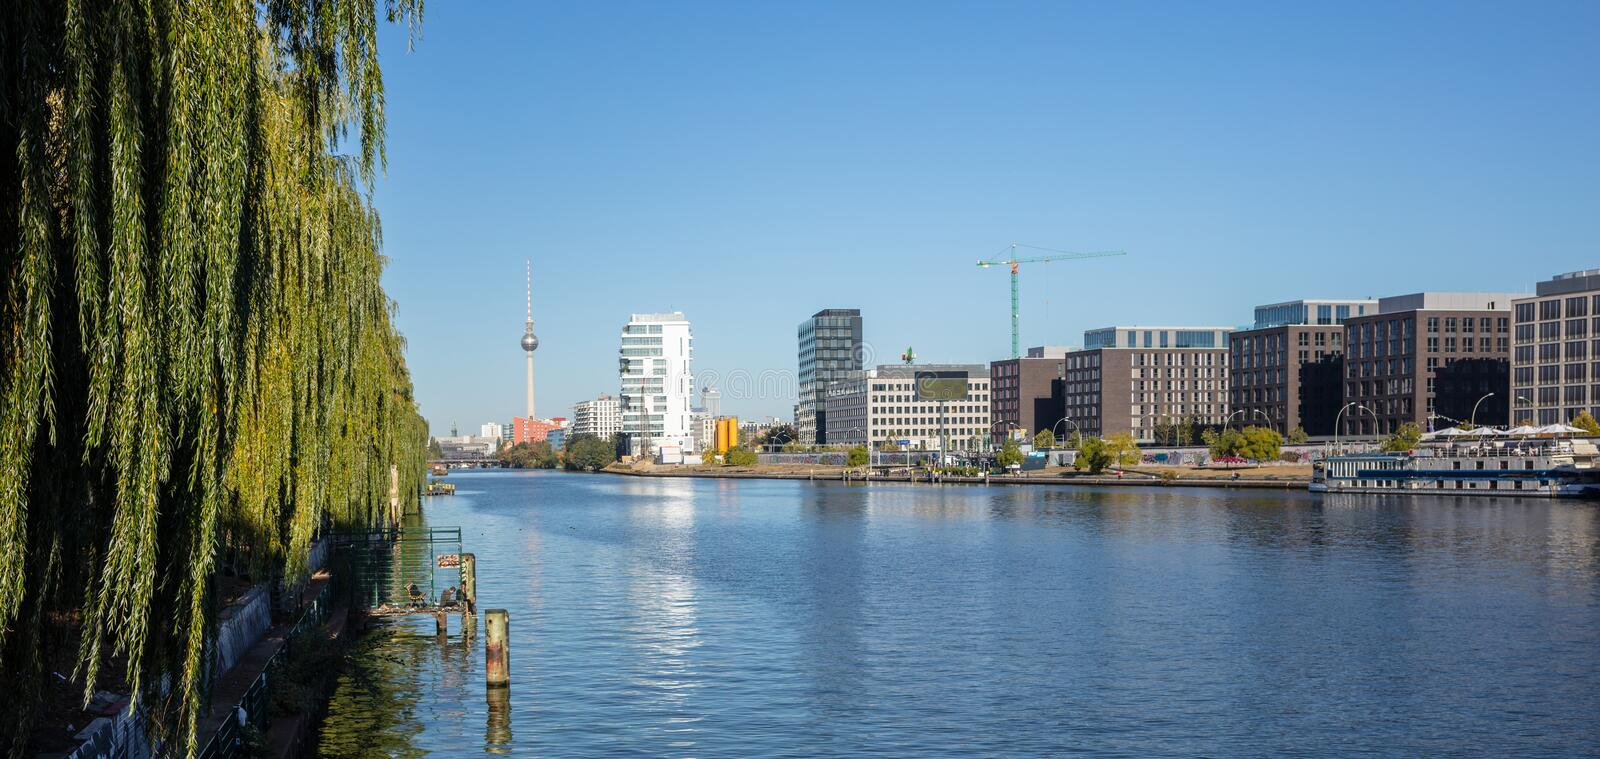 Spree river east side at Berlin, Germany. Industrial area, tv tower and Oberbaum bridge. Panoramic view, banner. Spree river east side at Berlin, Germany royalty free stock images